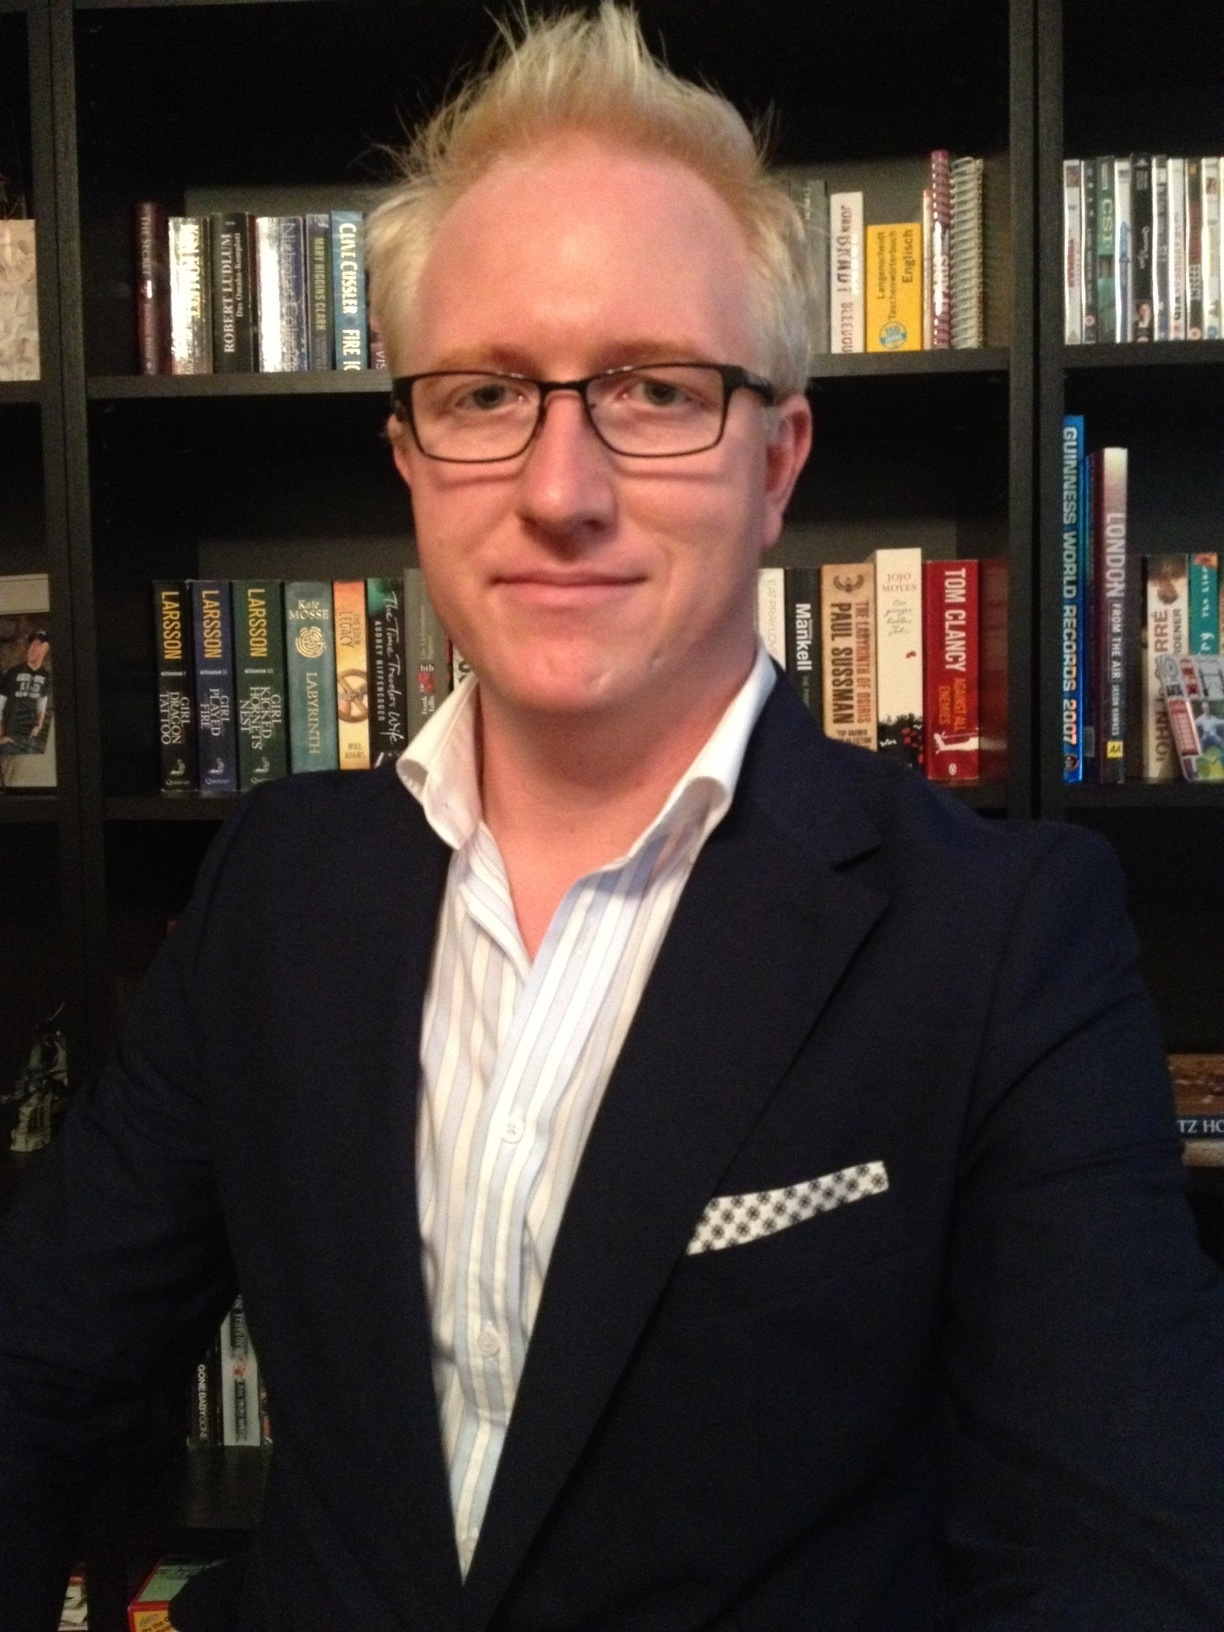 Ray Goertz has been appointed General Manager at The Arch London